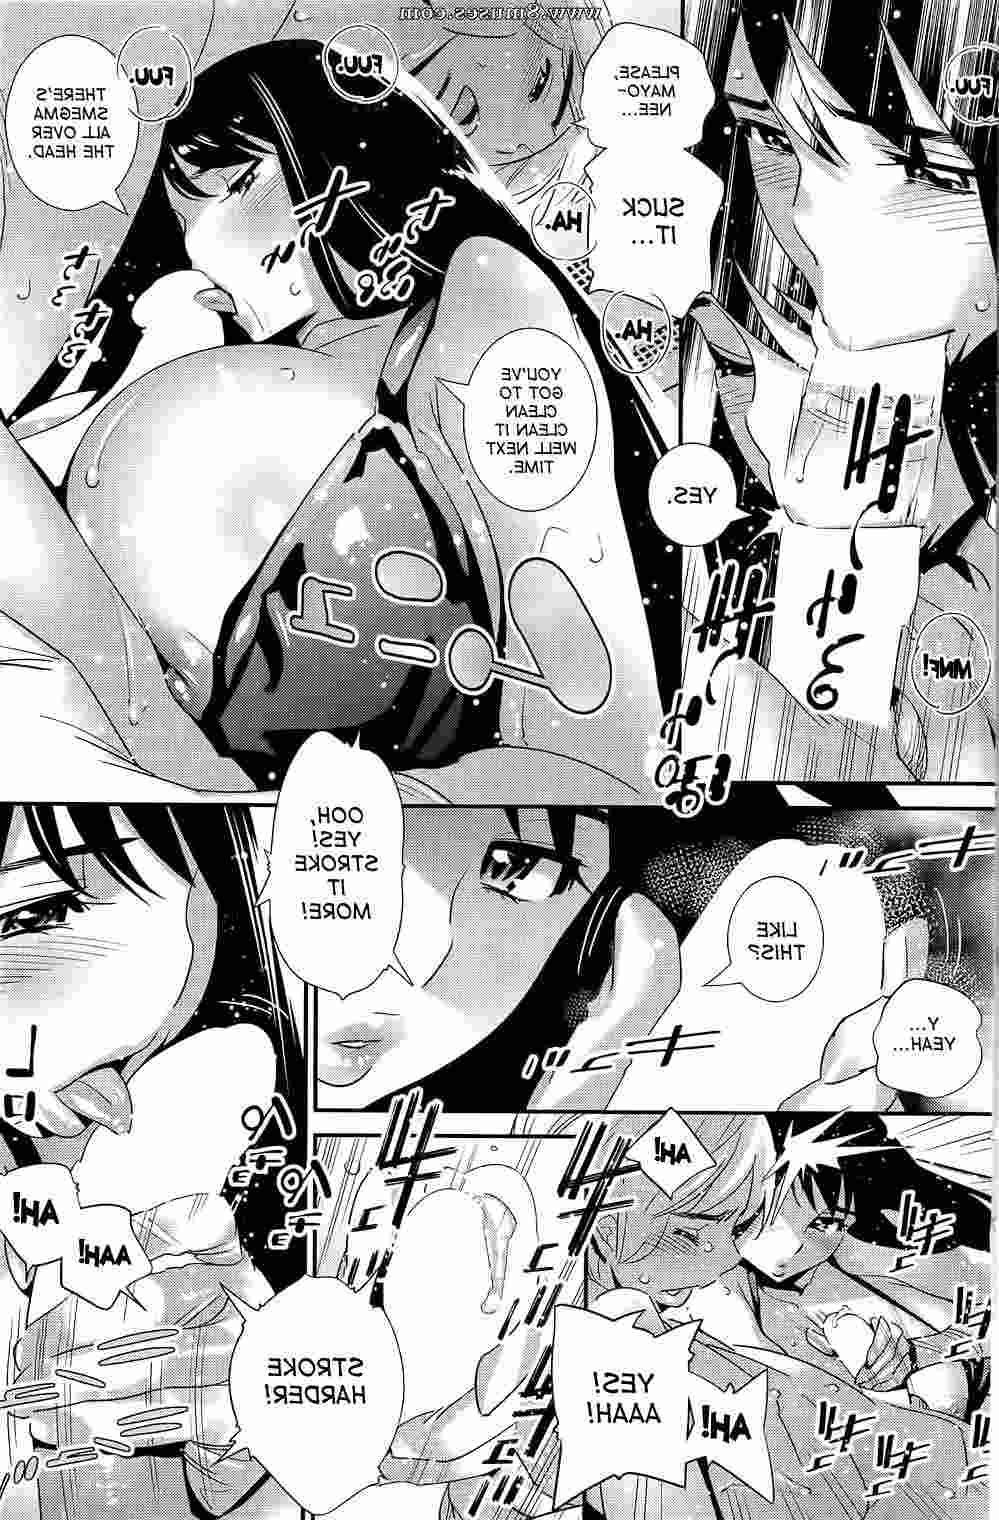 Hentai-and-Manga-English/Katsura-Yoshihiro/The-Ghost-Behind-My-Back The_Ghost_Behind_My_Back__8muses_-_Sex_and_Porn_Comics_14.jpg